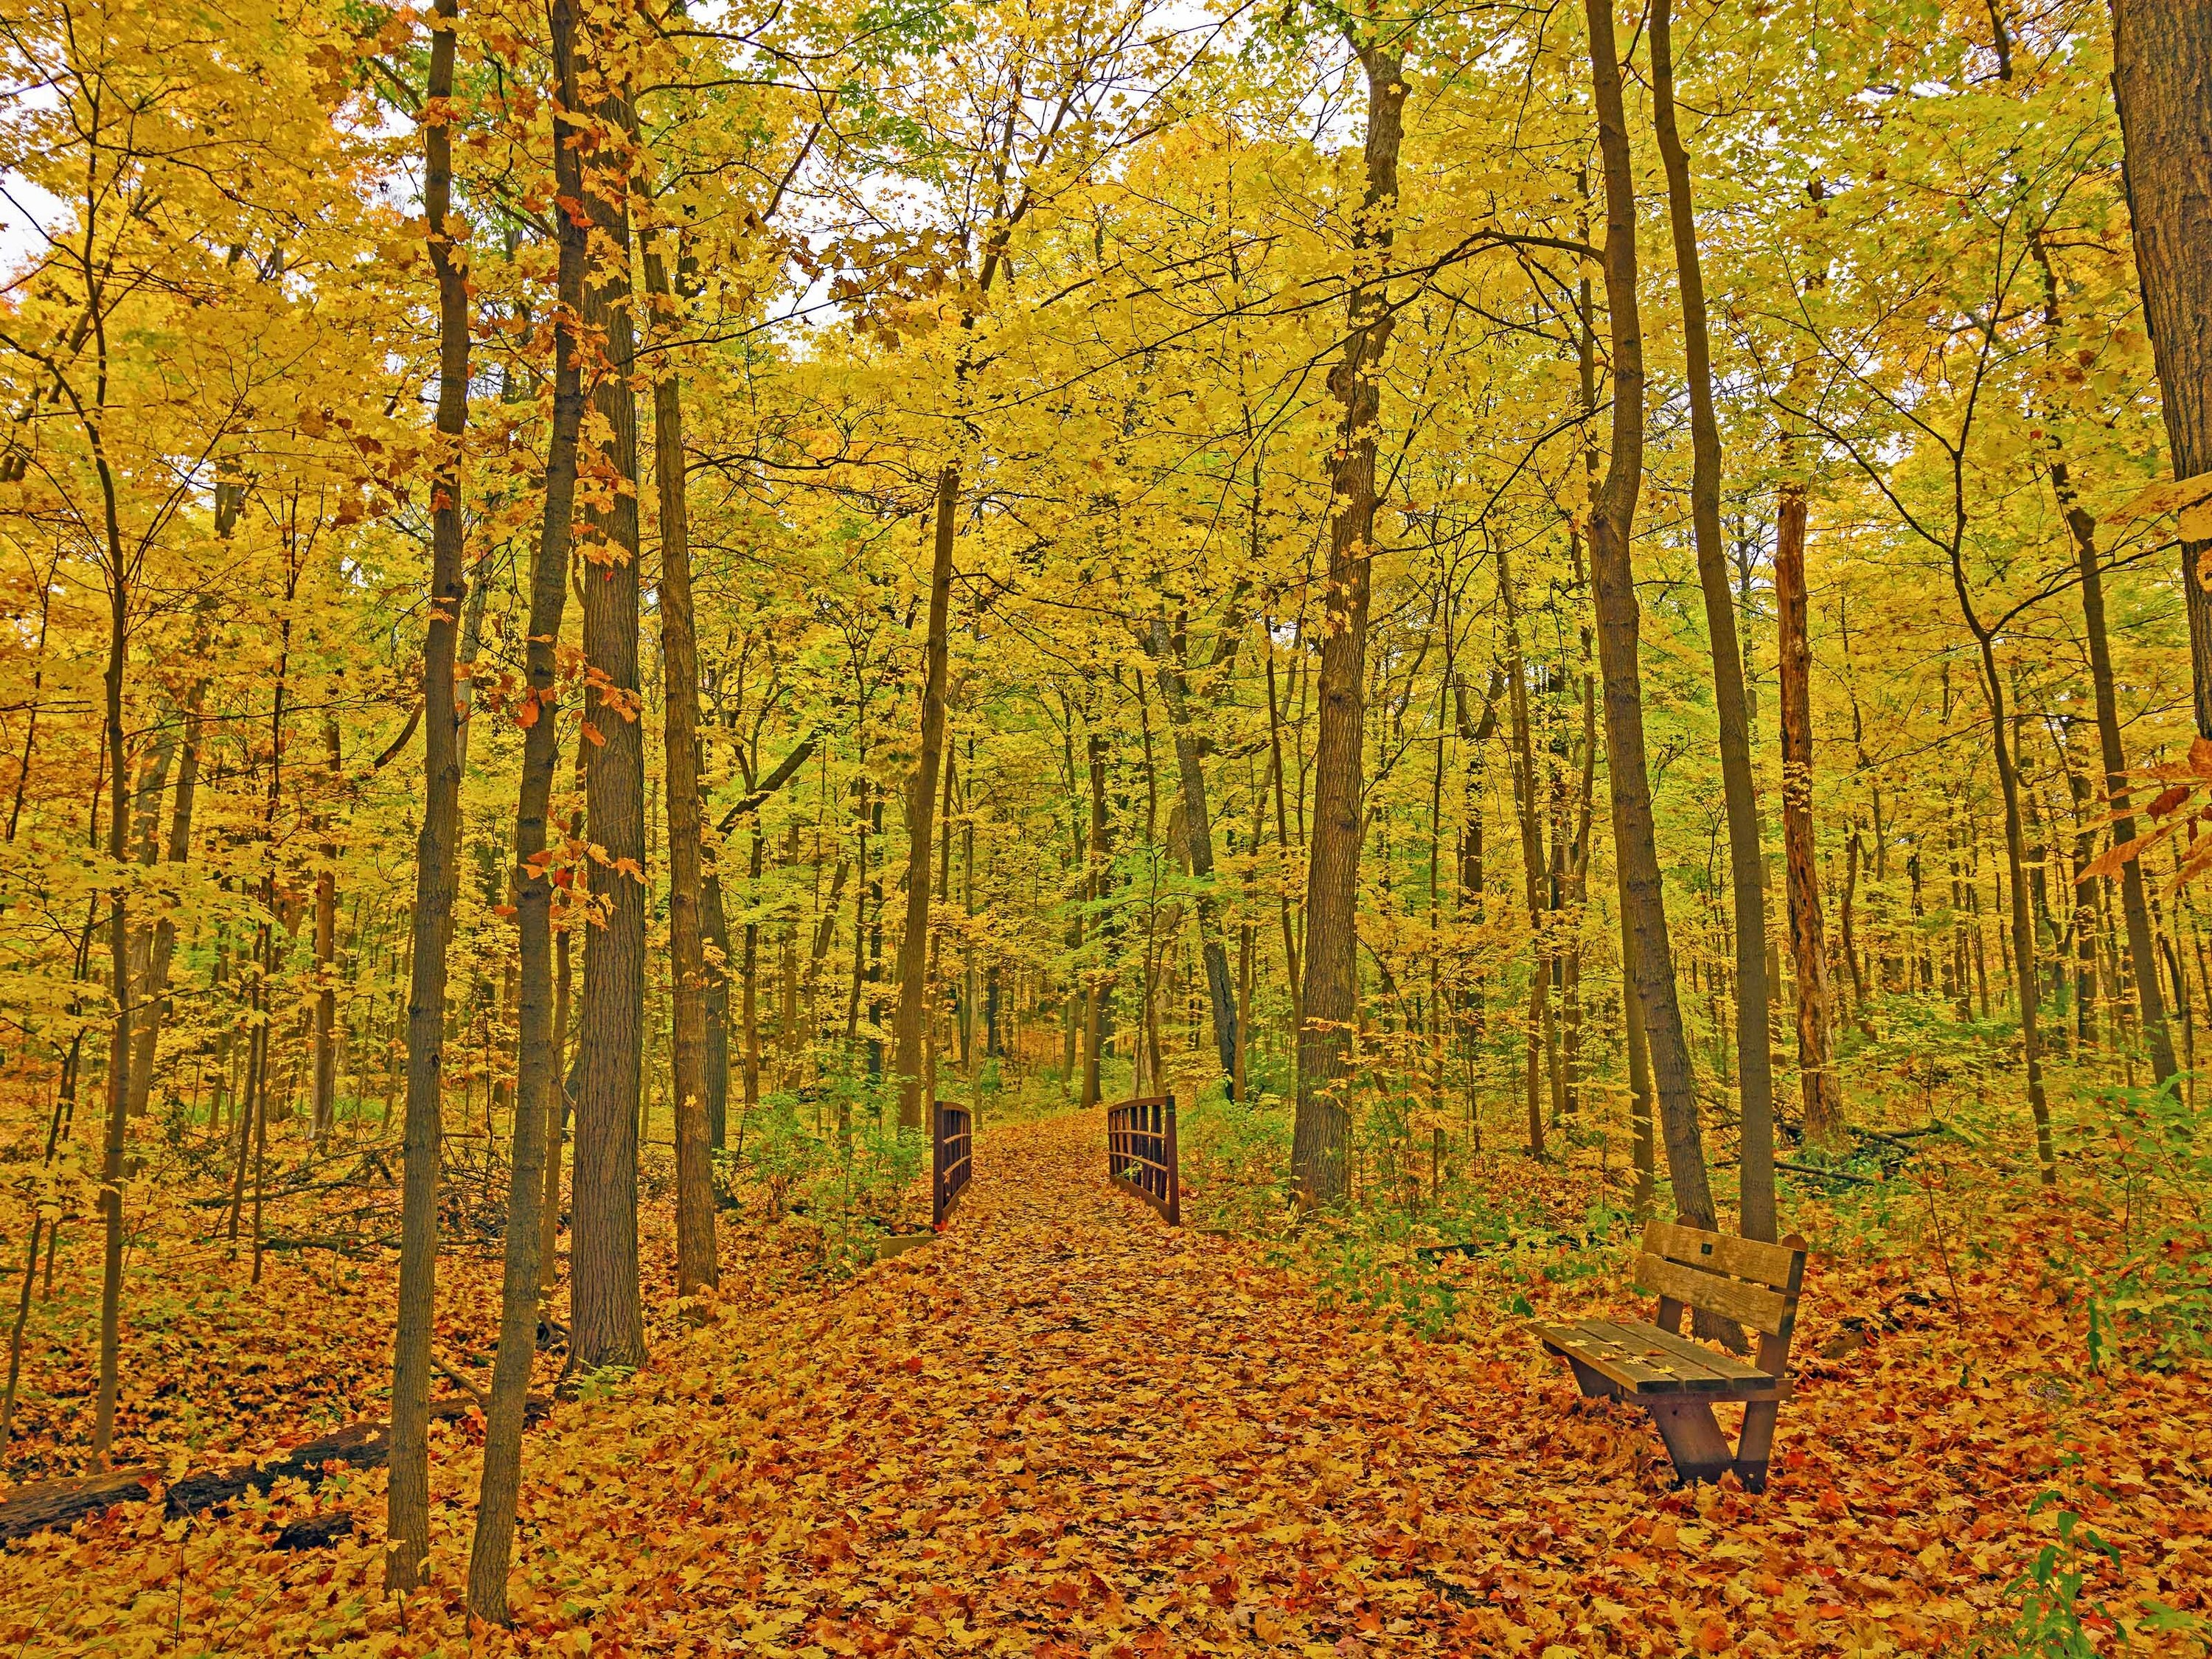 Morton Arboretum is offering guided 'forest therapy' walks for stress relief